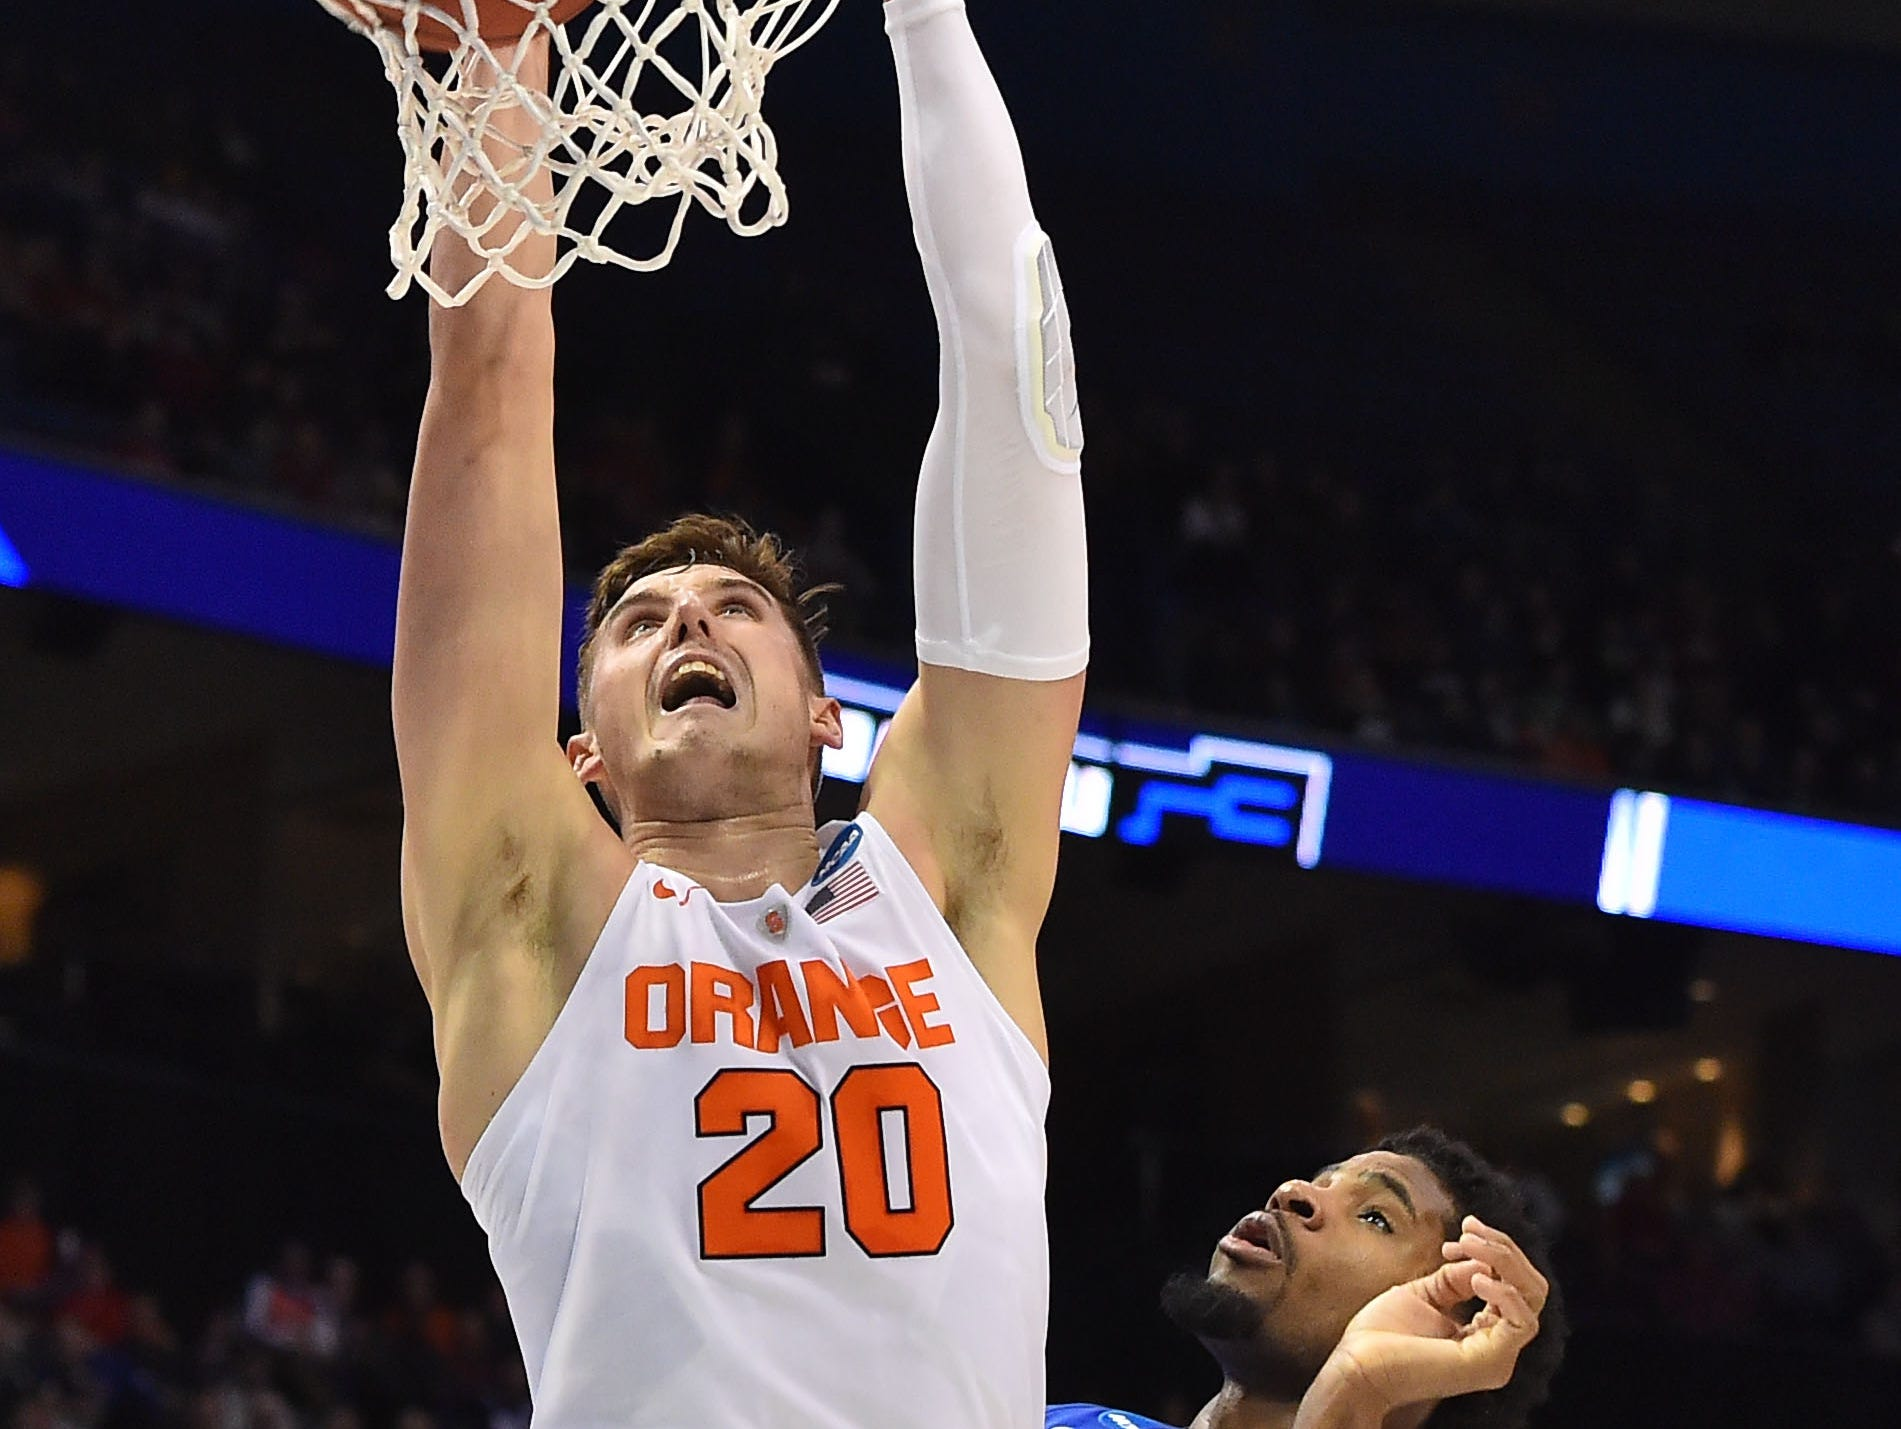 Syracuse's Tyler Lydon dunks while Middle Tennessee's Perrin Buford looks on at Scottrade Center in St. Louis, Missouri Sunday.